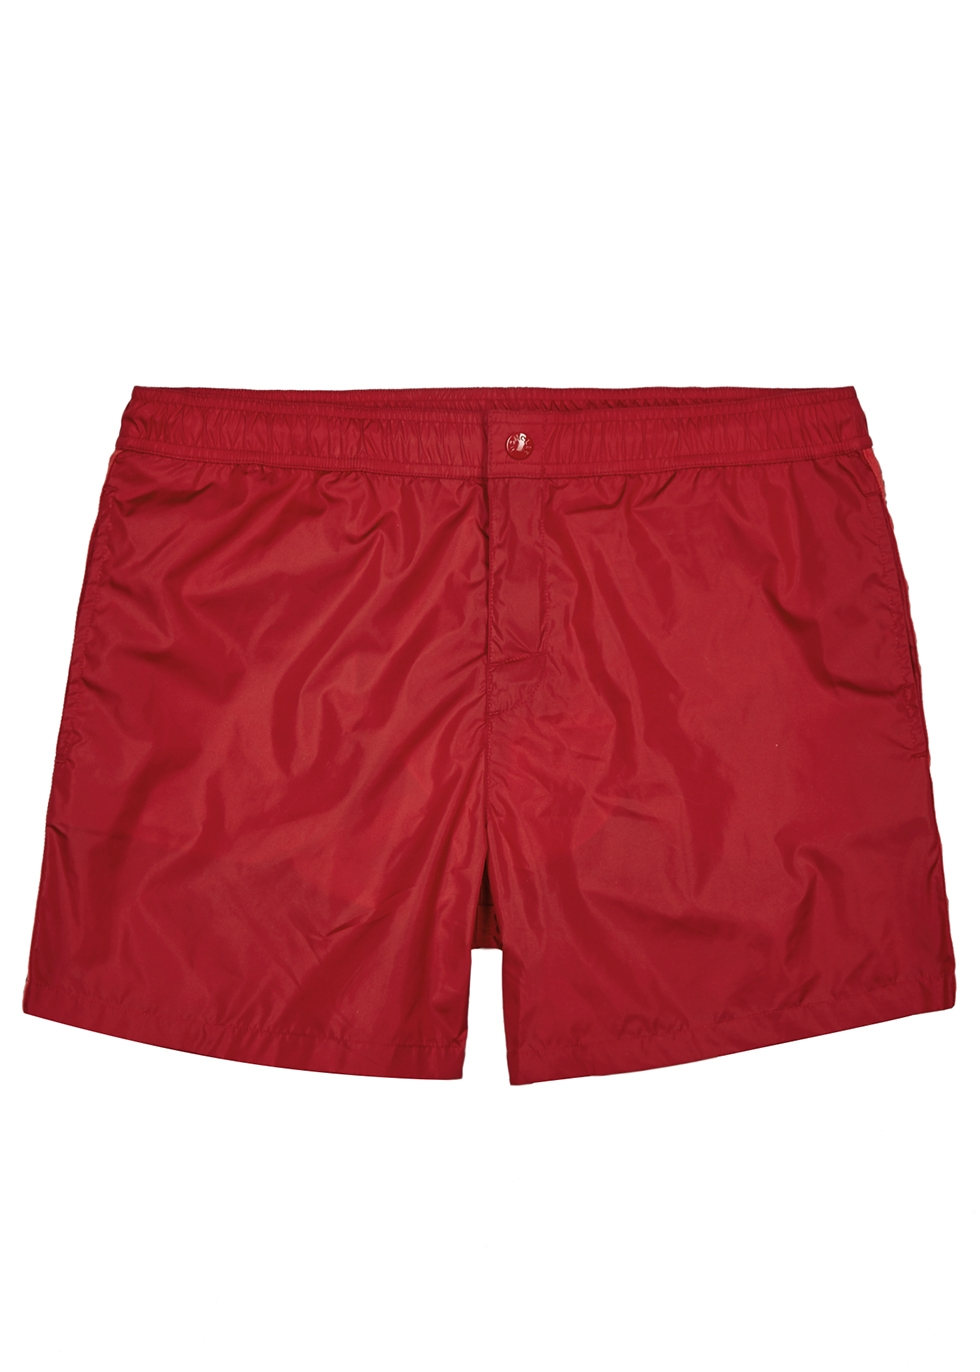 Dolmais red swim shorts - Moncler